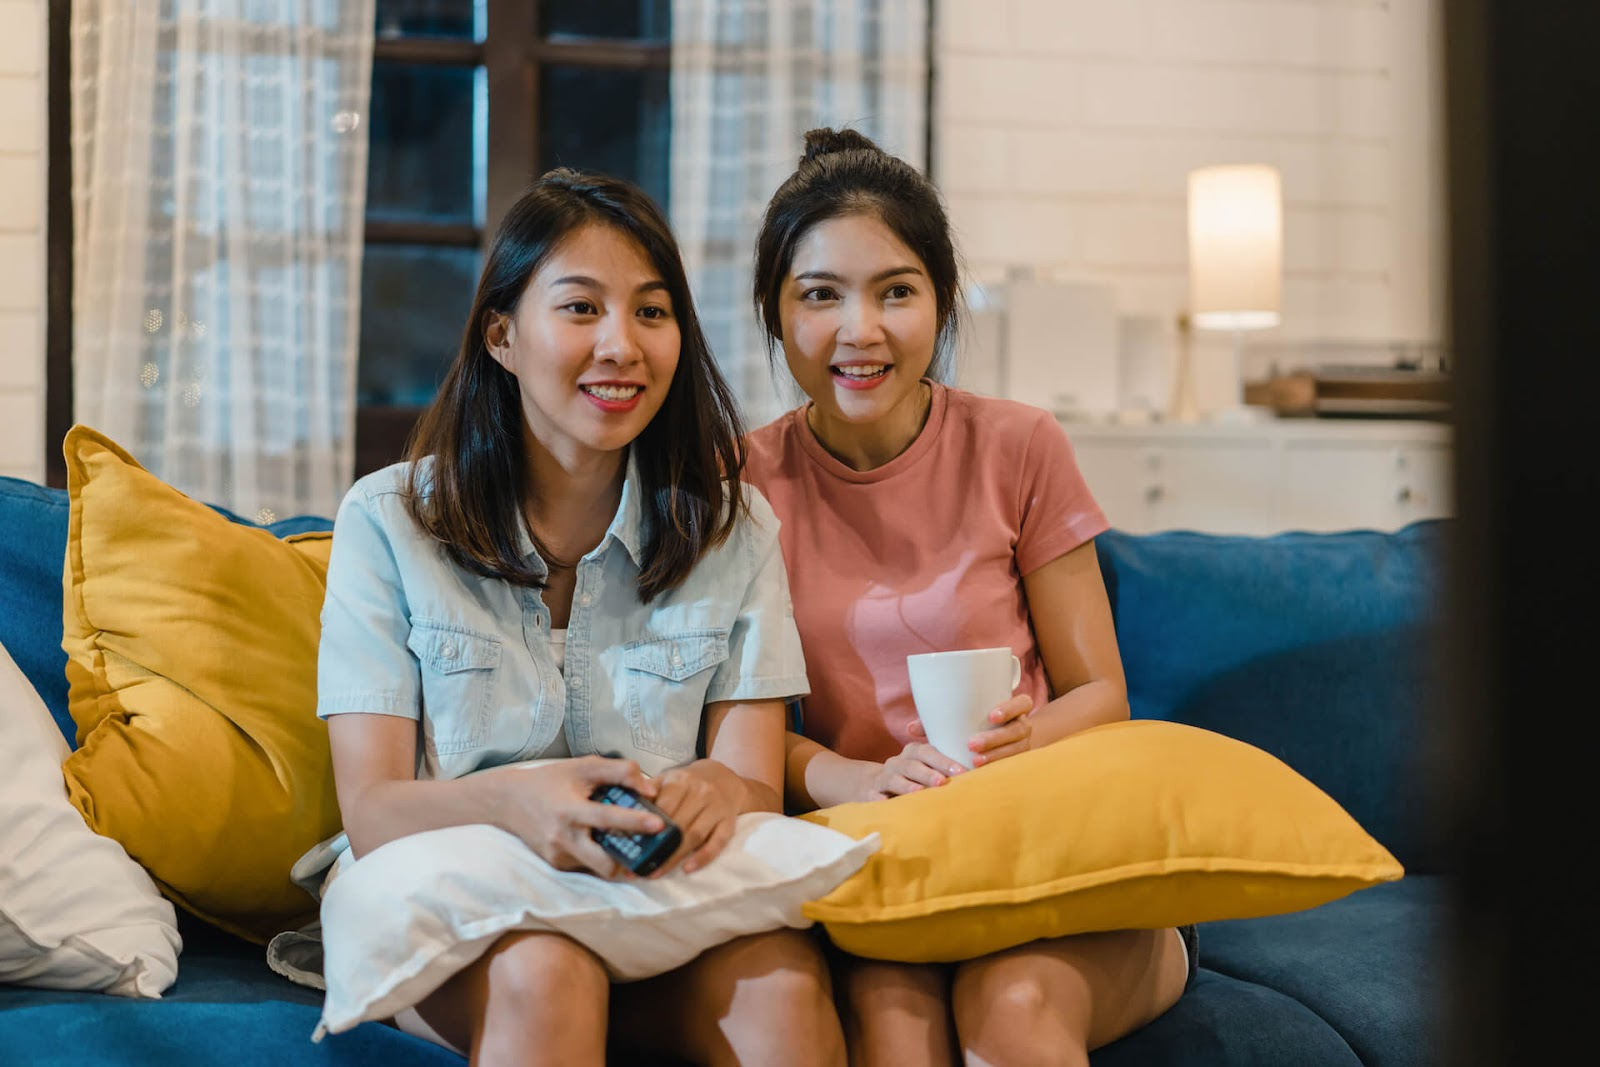 Two woman watching a movie together